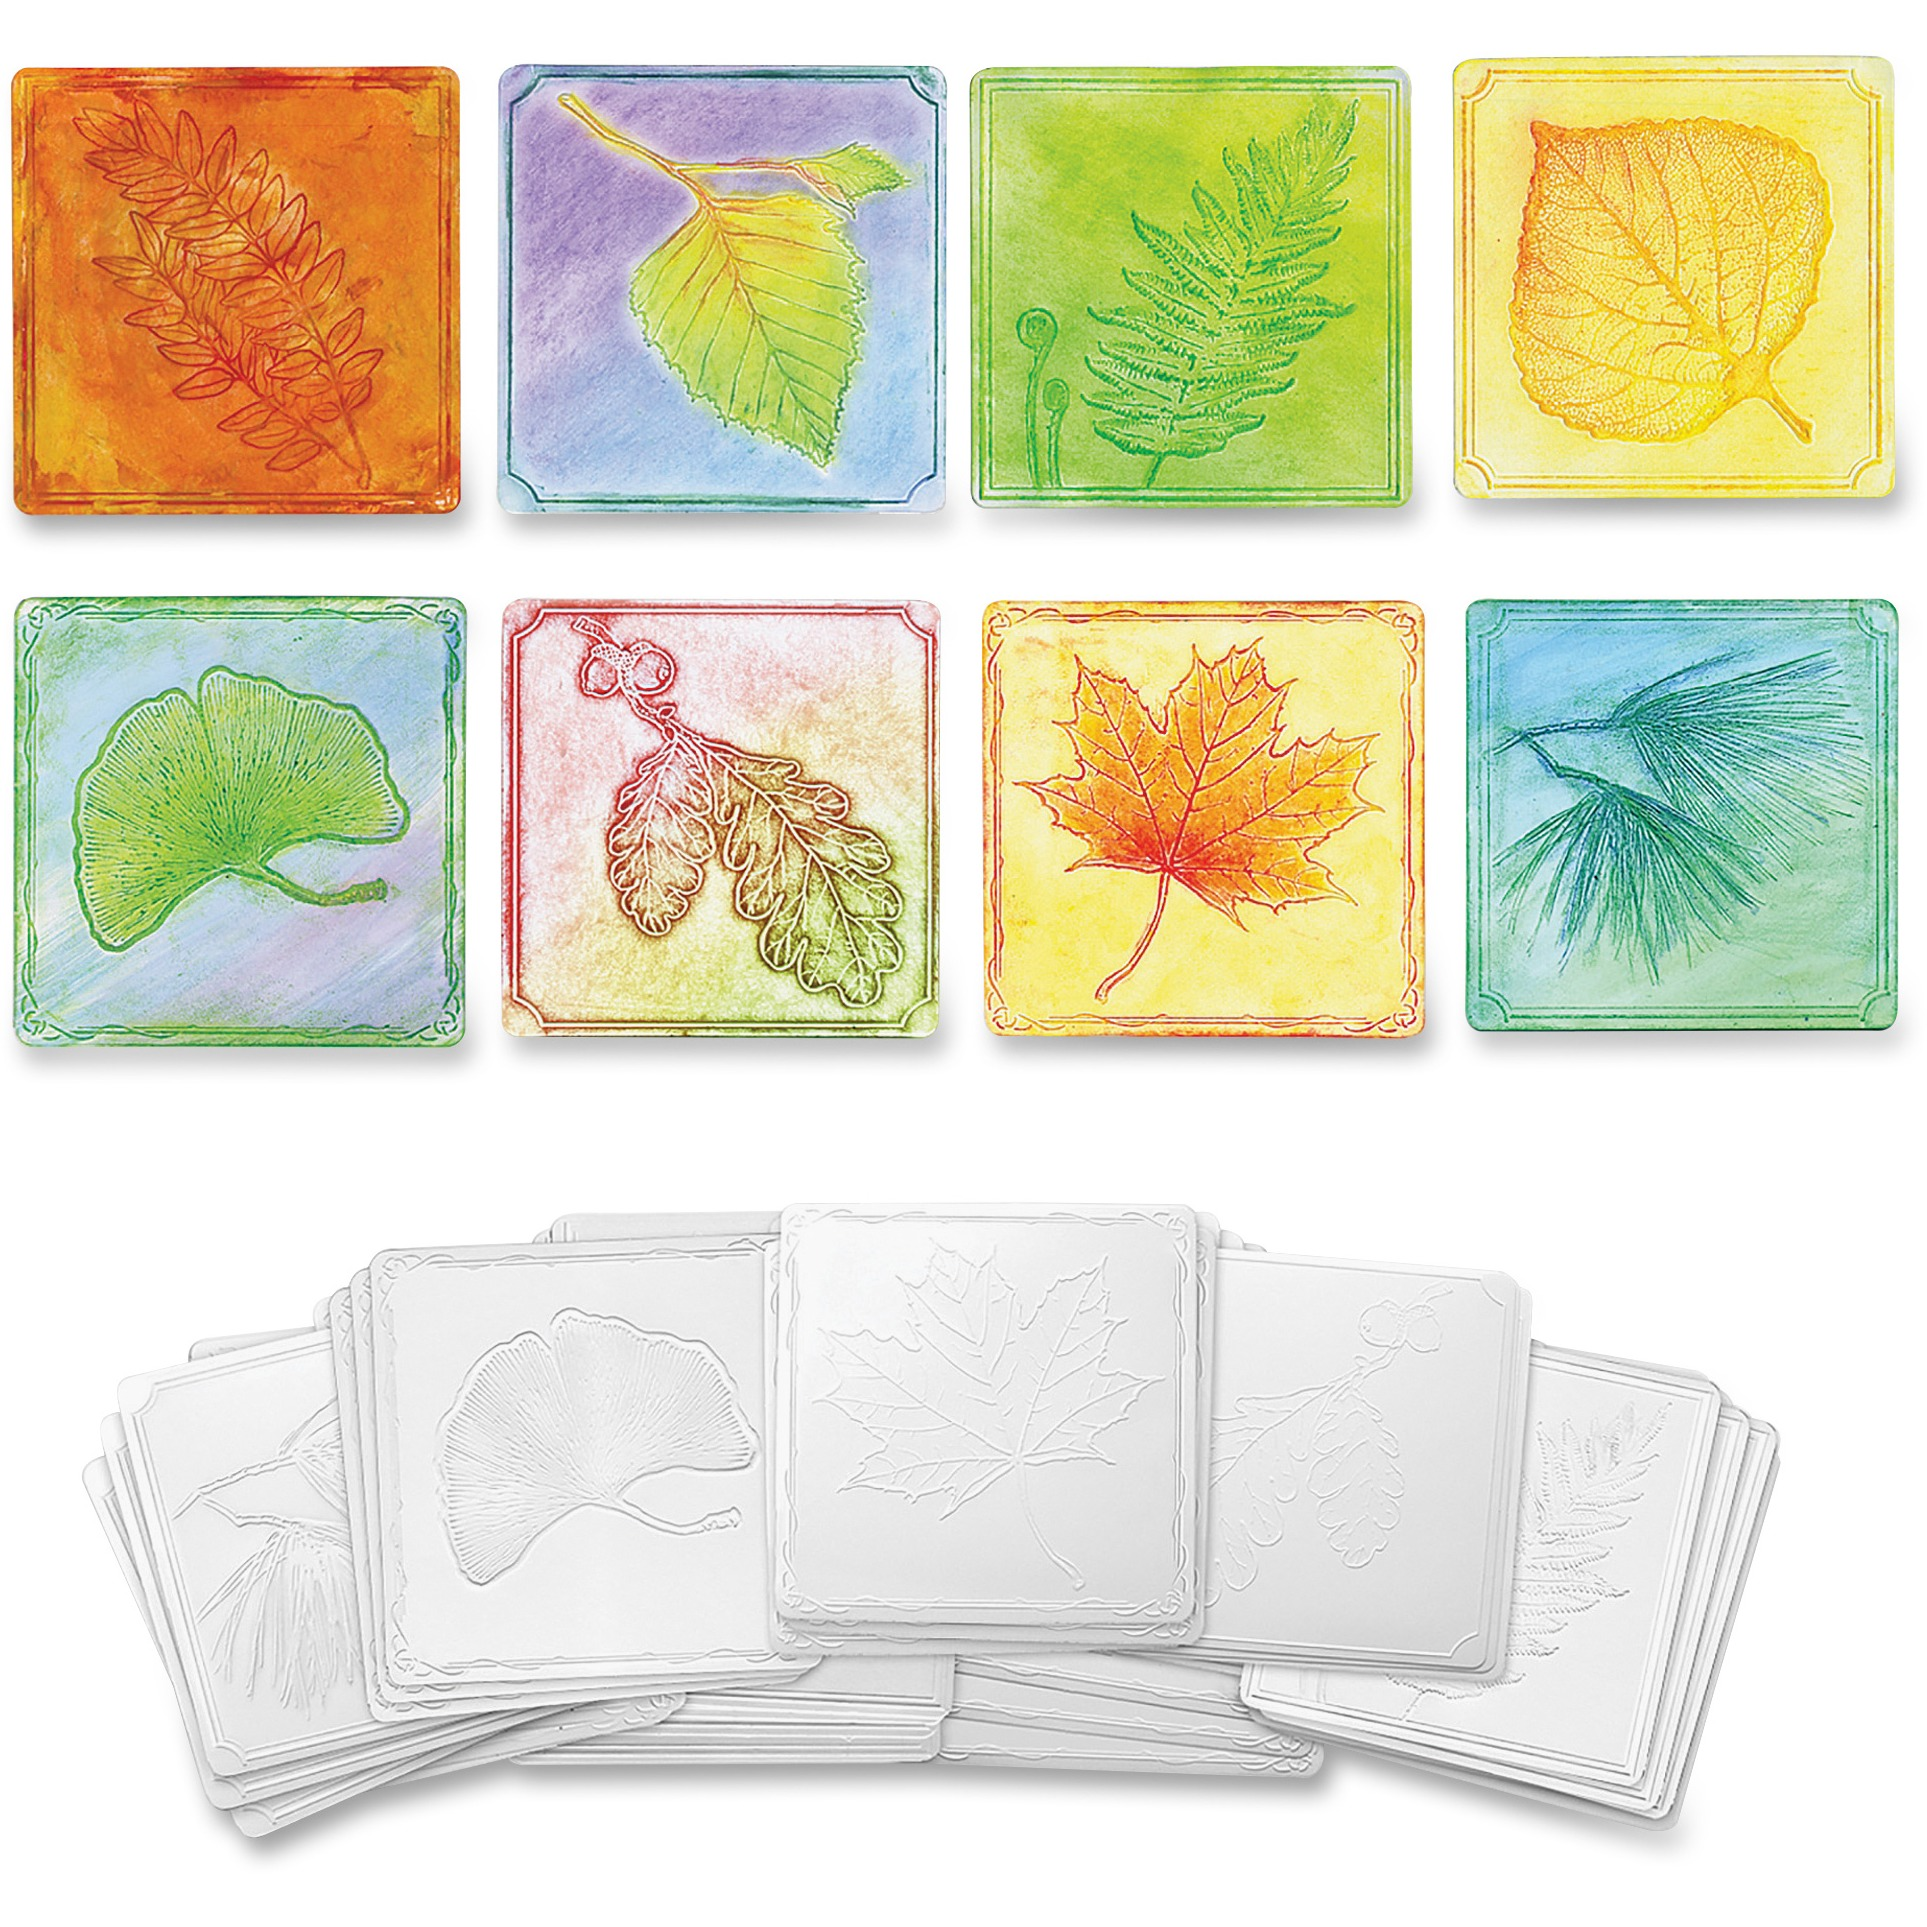 Creativity Street Leaf-embossed Paper Set, White, 24 / Set (Quantity)